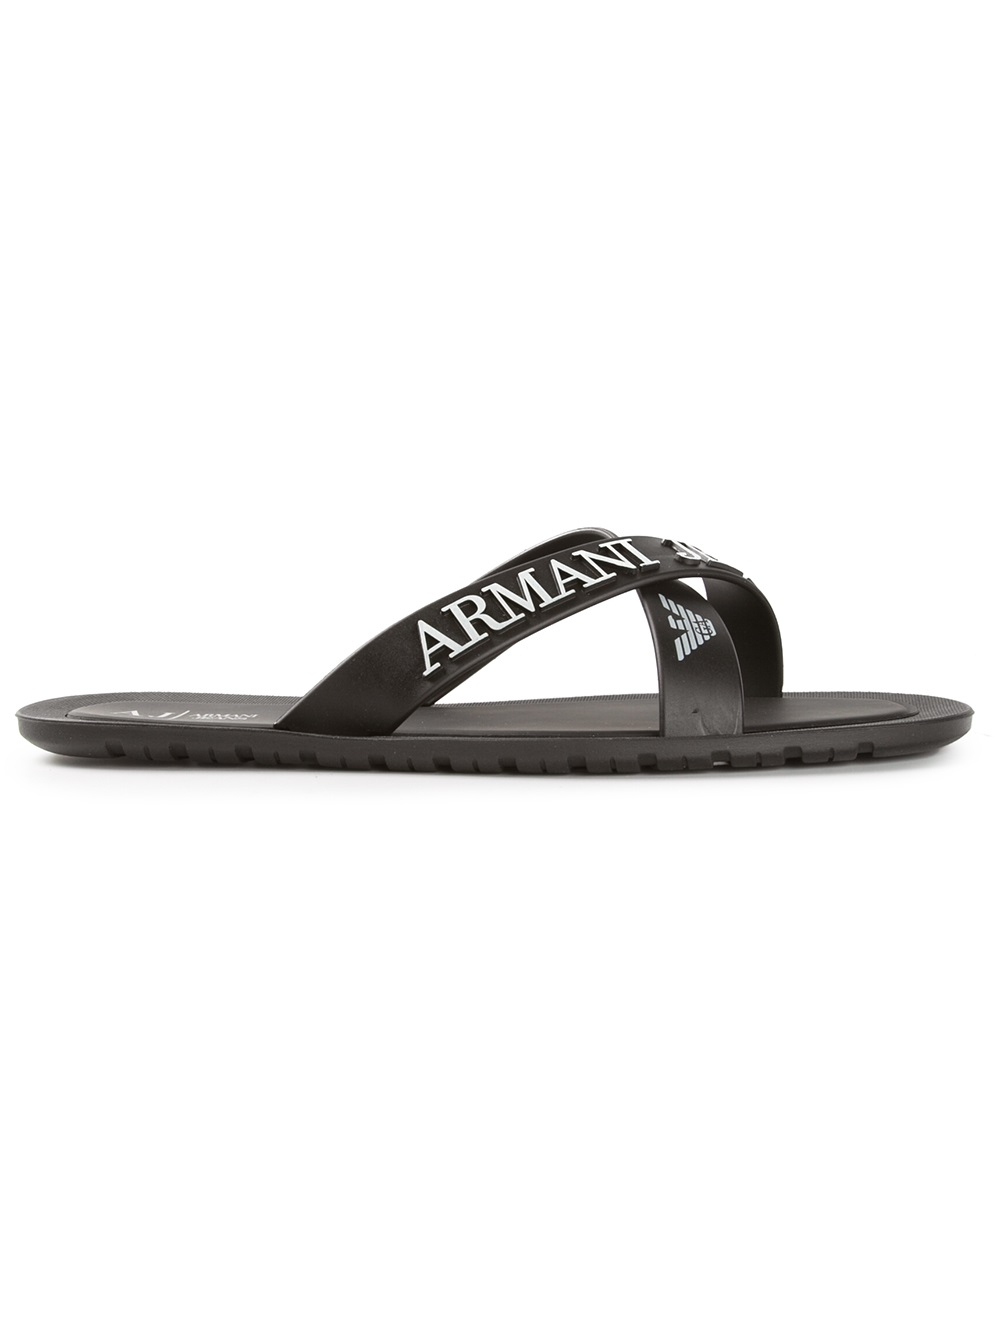 2a7cf16270189 Lyst - Armani Jeans Crossover Sandals in Black for Men